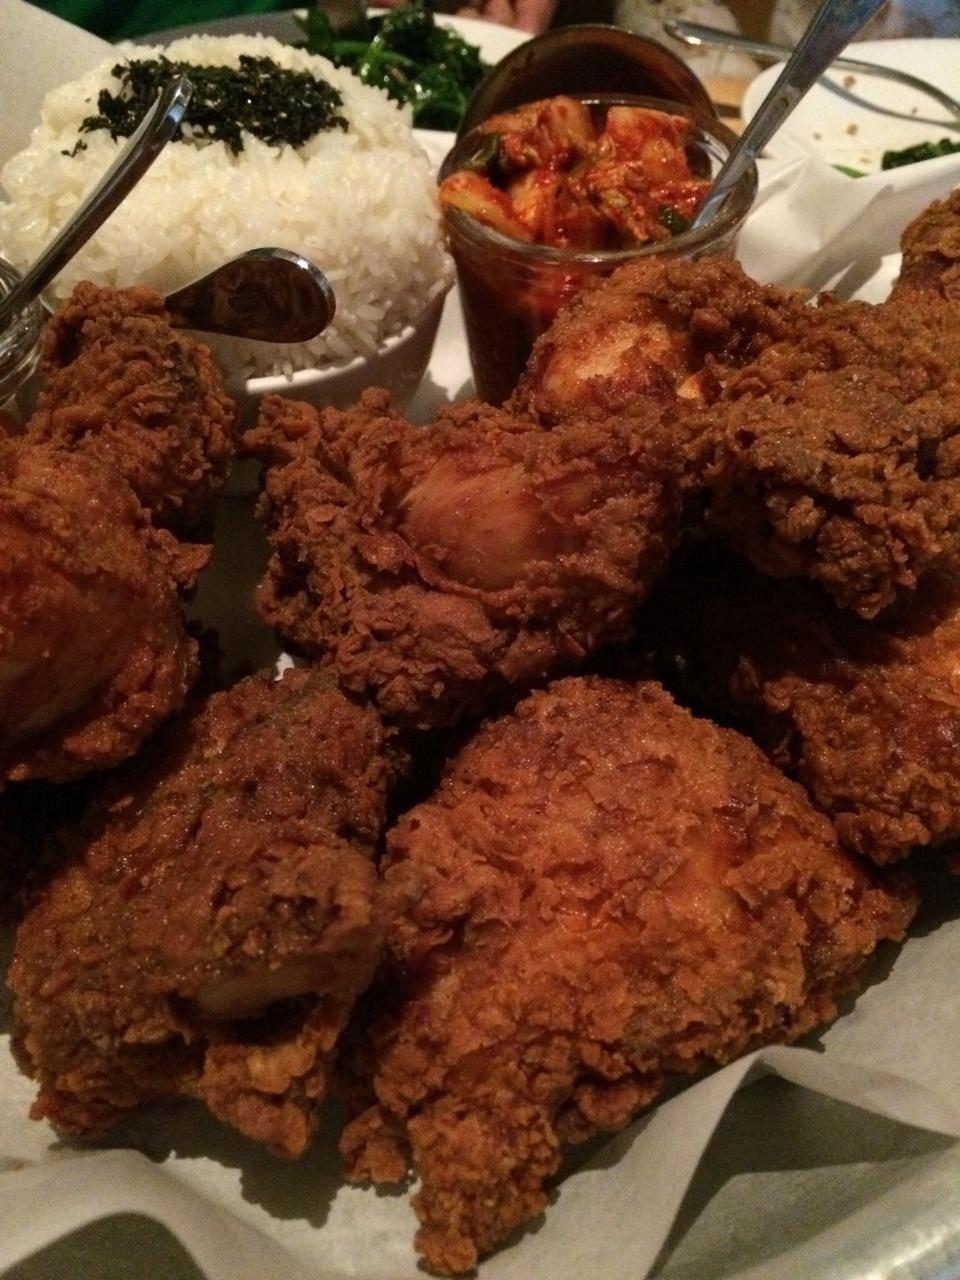 """<p><a href=""""https://www.tripadvisor.com/Restaurant_Review-g60878-d1076628-Reviews-Ma_ono_Fried_Chicken_Whisky-Seattle_Washington.html"""" rel=""""nofollow noopener"""" target=""""_blank"""" data-ylk=""""slk:Ma'ono Fried Chicken & Whisky"""" class=""""link rapid-noclick-resp"""">Ma'ono Fried Chicken & Whisky</a>, Seattle</p><p>Amazing Hawaiian restaurant. Chic in style. You must do their signature Fried Chicken family style with the wood roasted corn and curry and bacon fried rice.<span class=""""redactor-invisible-space""""> - Foursquare user <a href=""""https://foursquare.com/bgutnik"""" rel=""""nofollow noopener"""" target=""""_blank"""" data-ylk=""""slk:Ben Gutnik"""" class=""""link rapid-noclick-resp"""">Ben Gutnik</a></span><br></p>"""